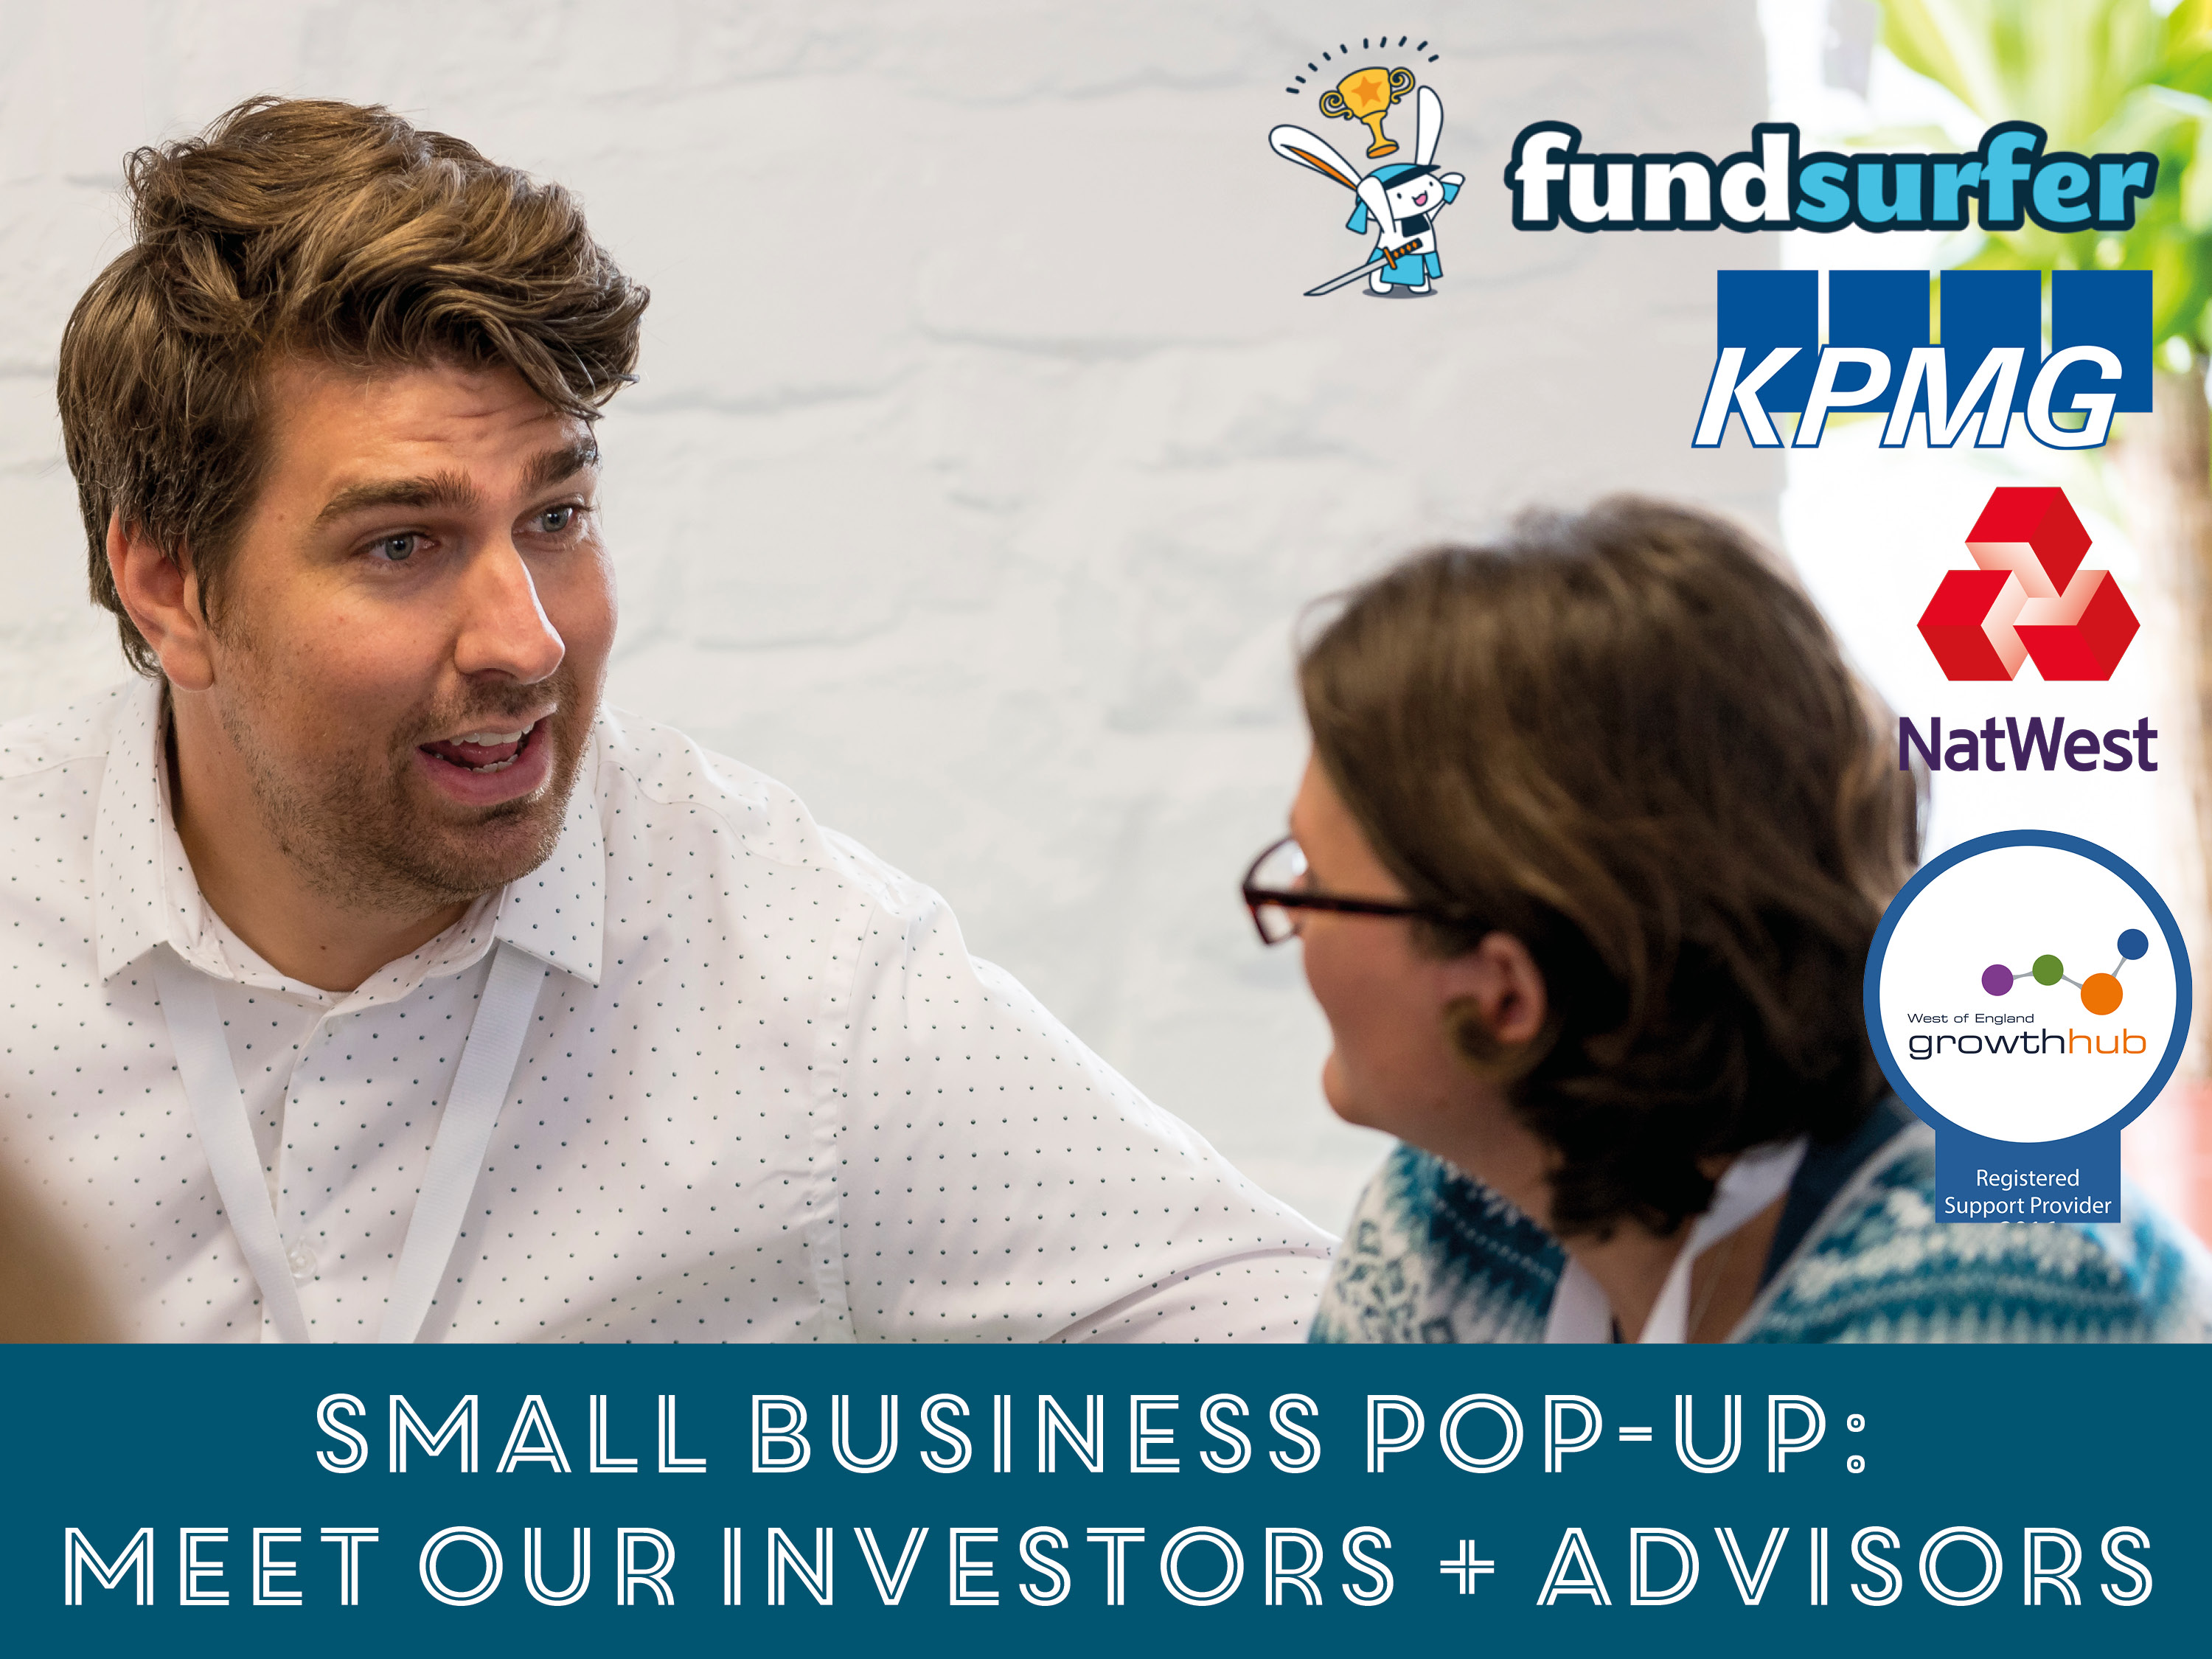 Small Business Accelerator (Pop-Up event)